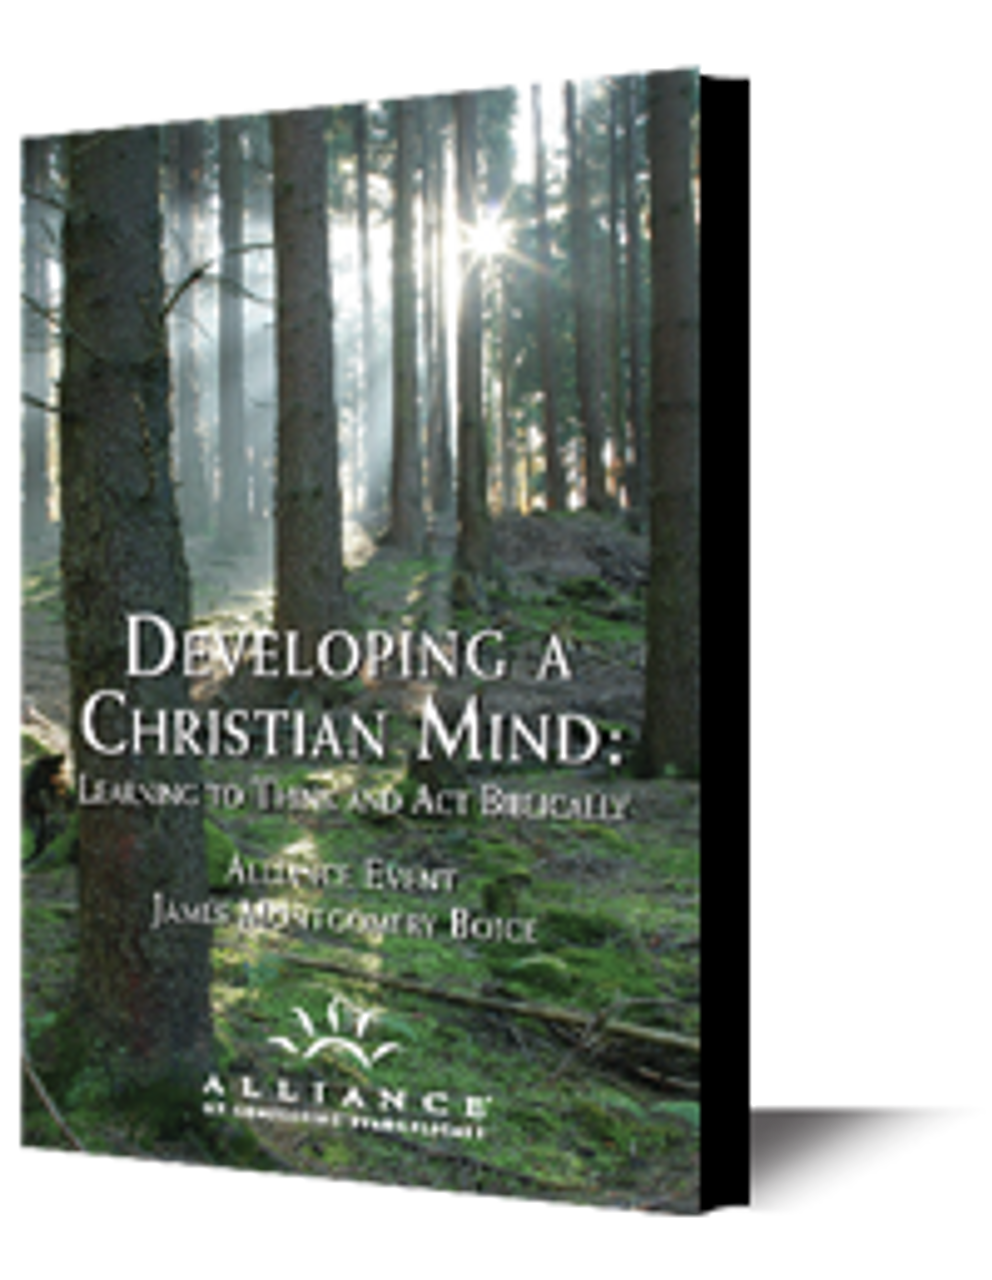 Develping a Christian Mind, Part 2 (mp3 download)